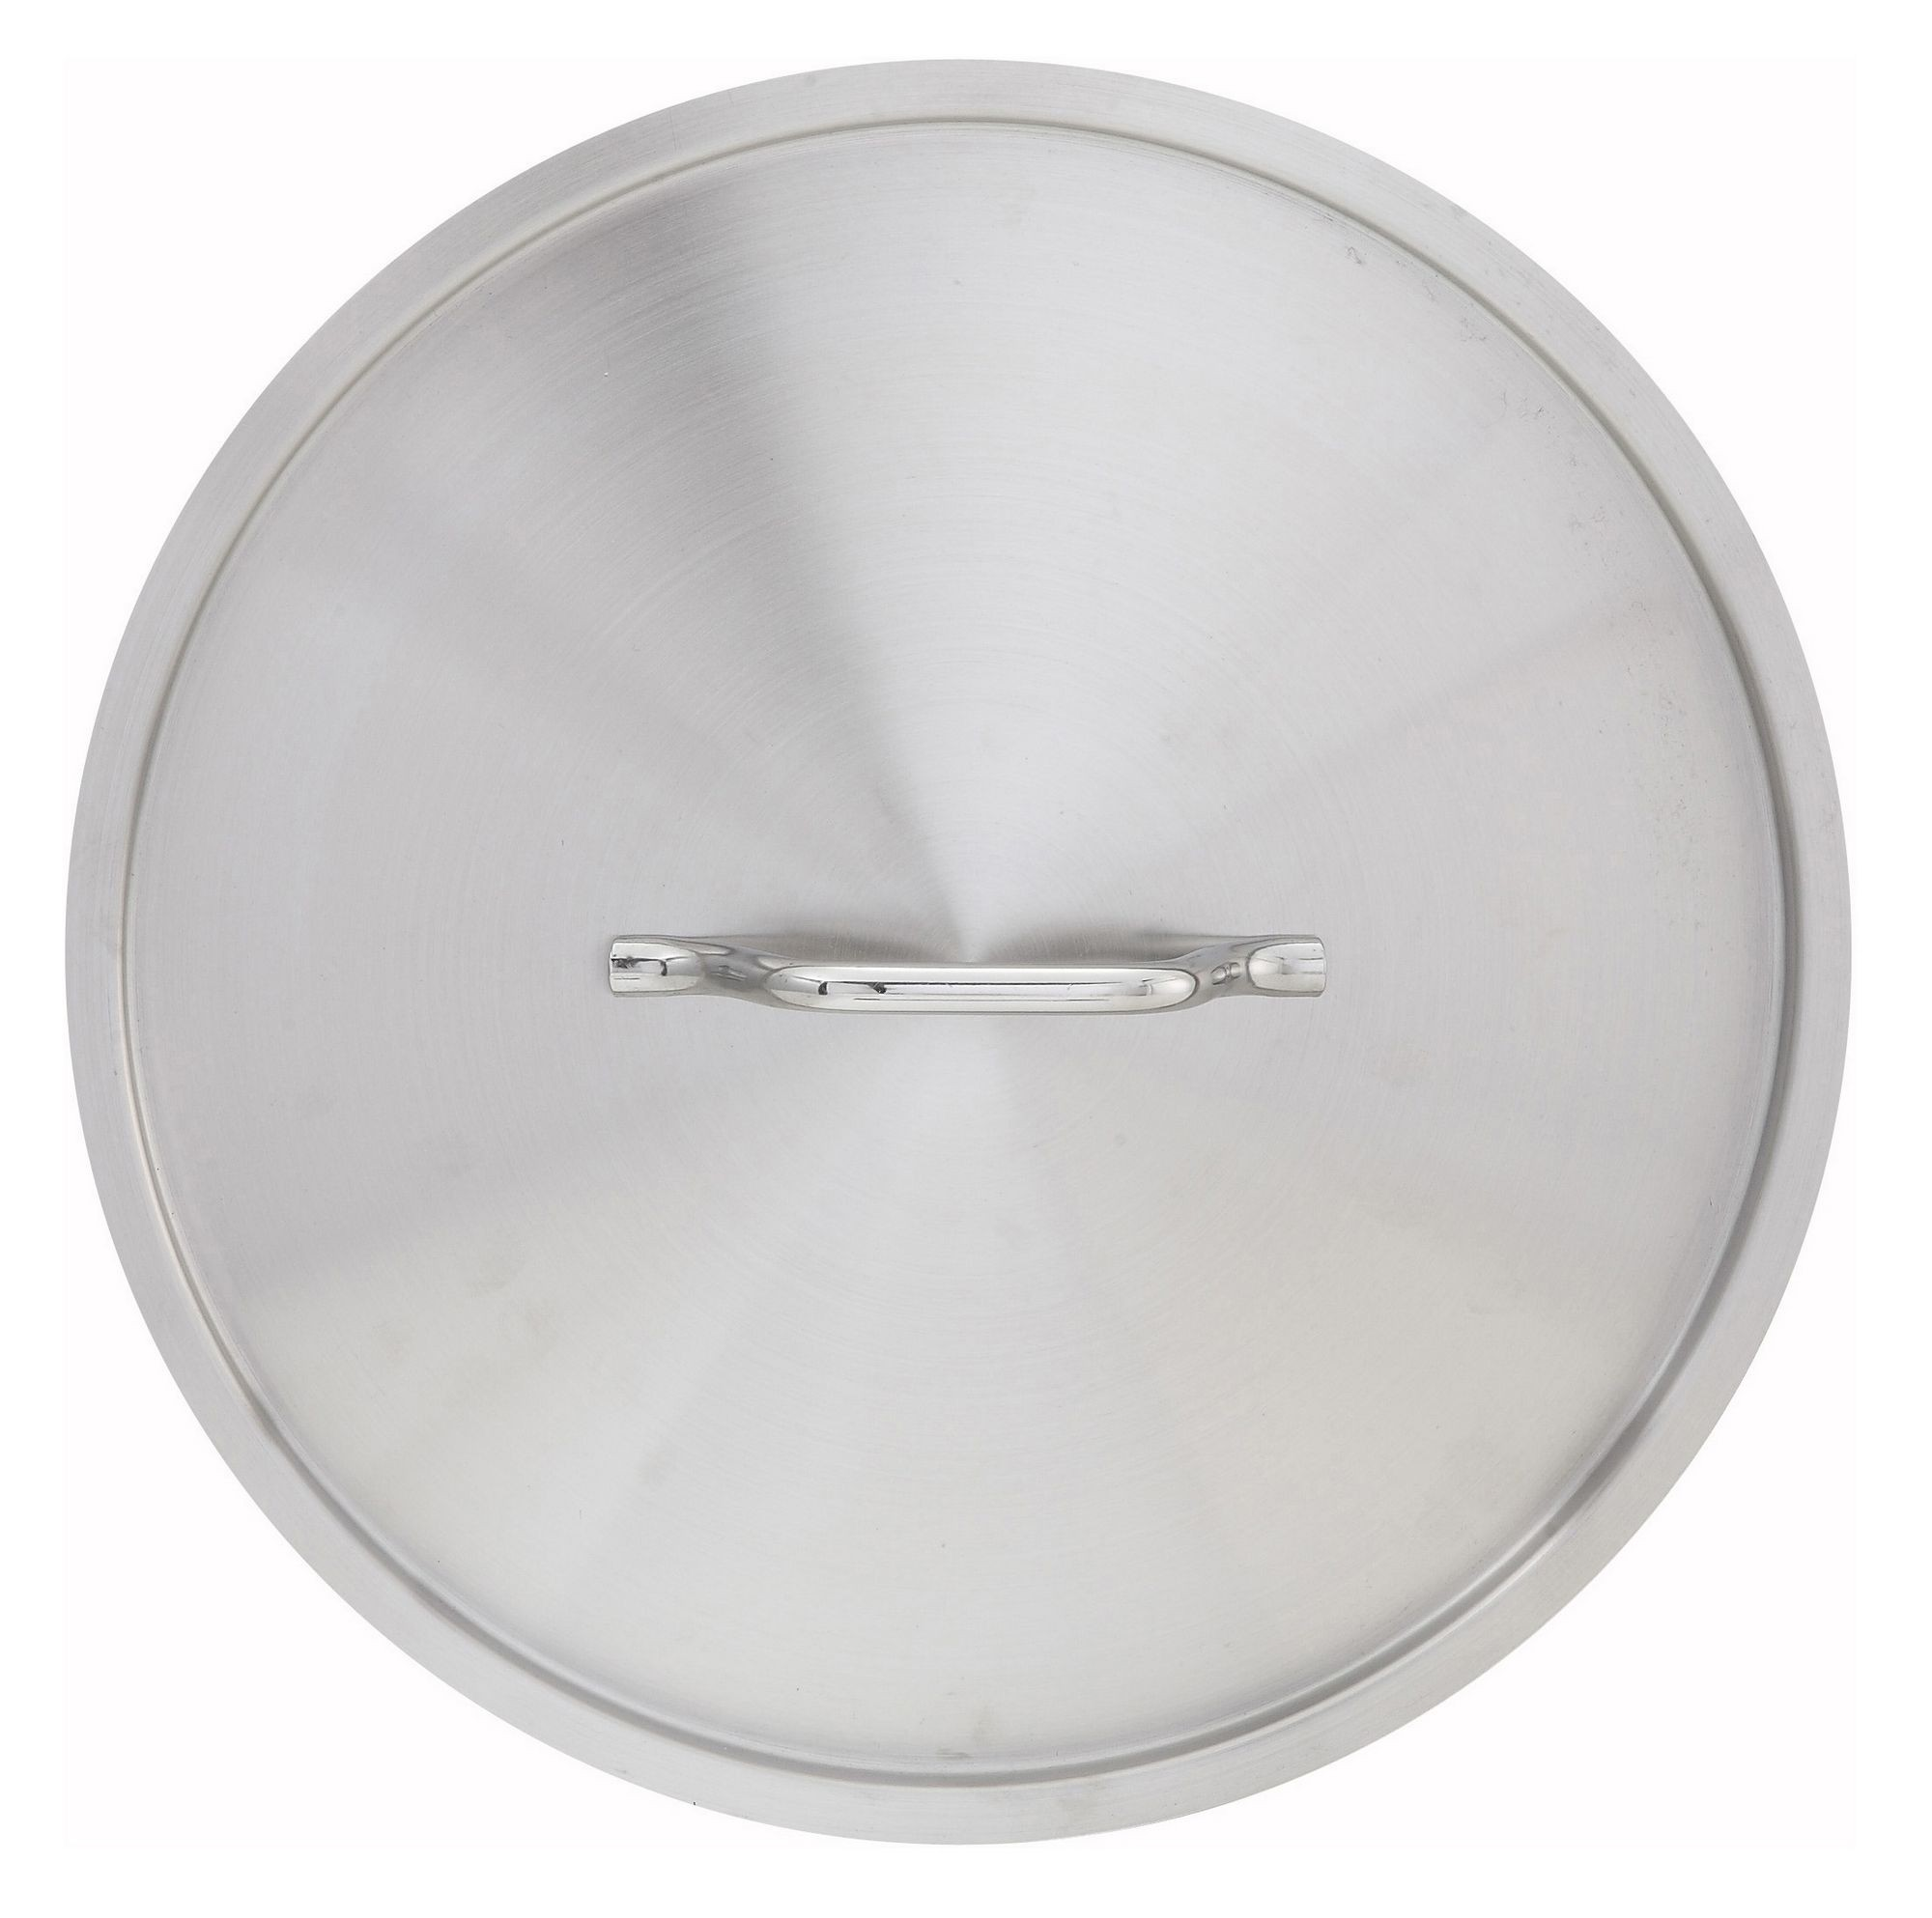 Winco SSTC-12F Stainless Steel Fry Pan Cover for SSFP-12 SSFP-12NS